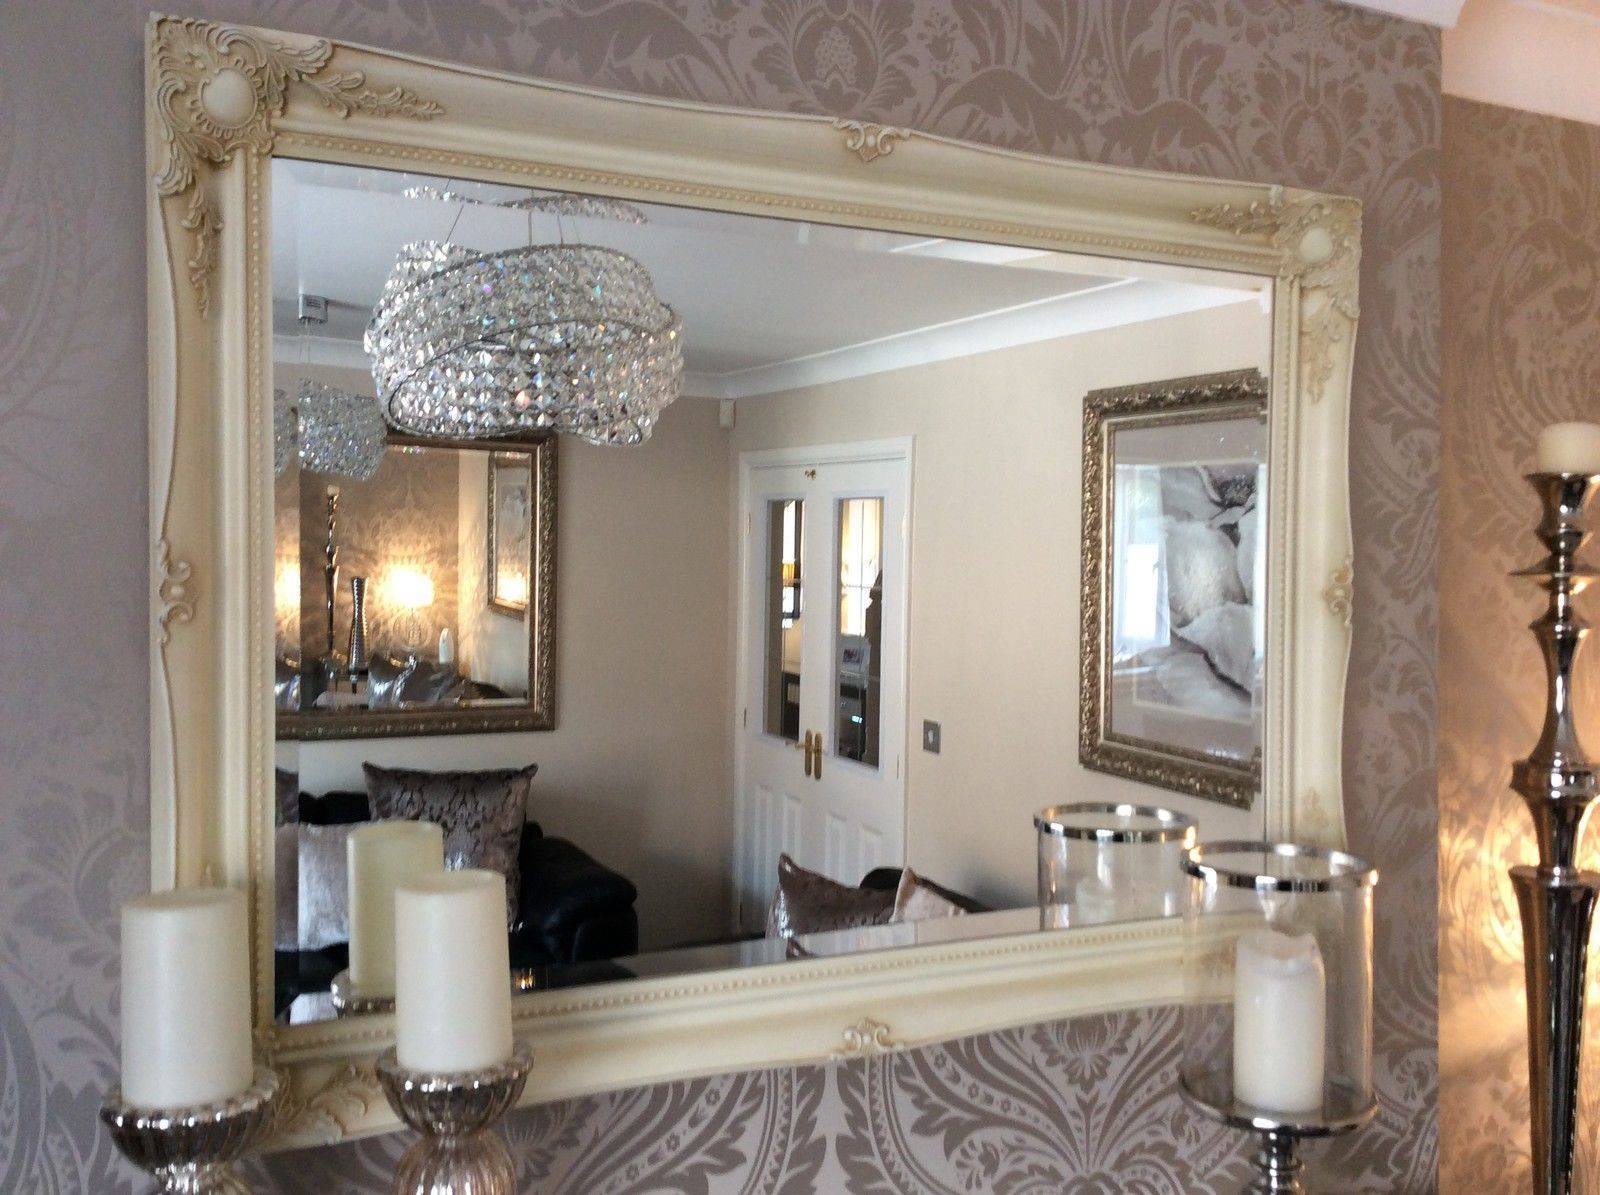 Fabulous Large Cream Decorative Stunning Shabby Chic Wall Mirror within Huge Ornate Mirrors (Image 6 of 15)